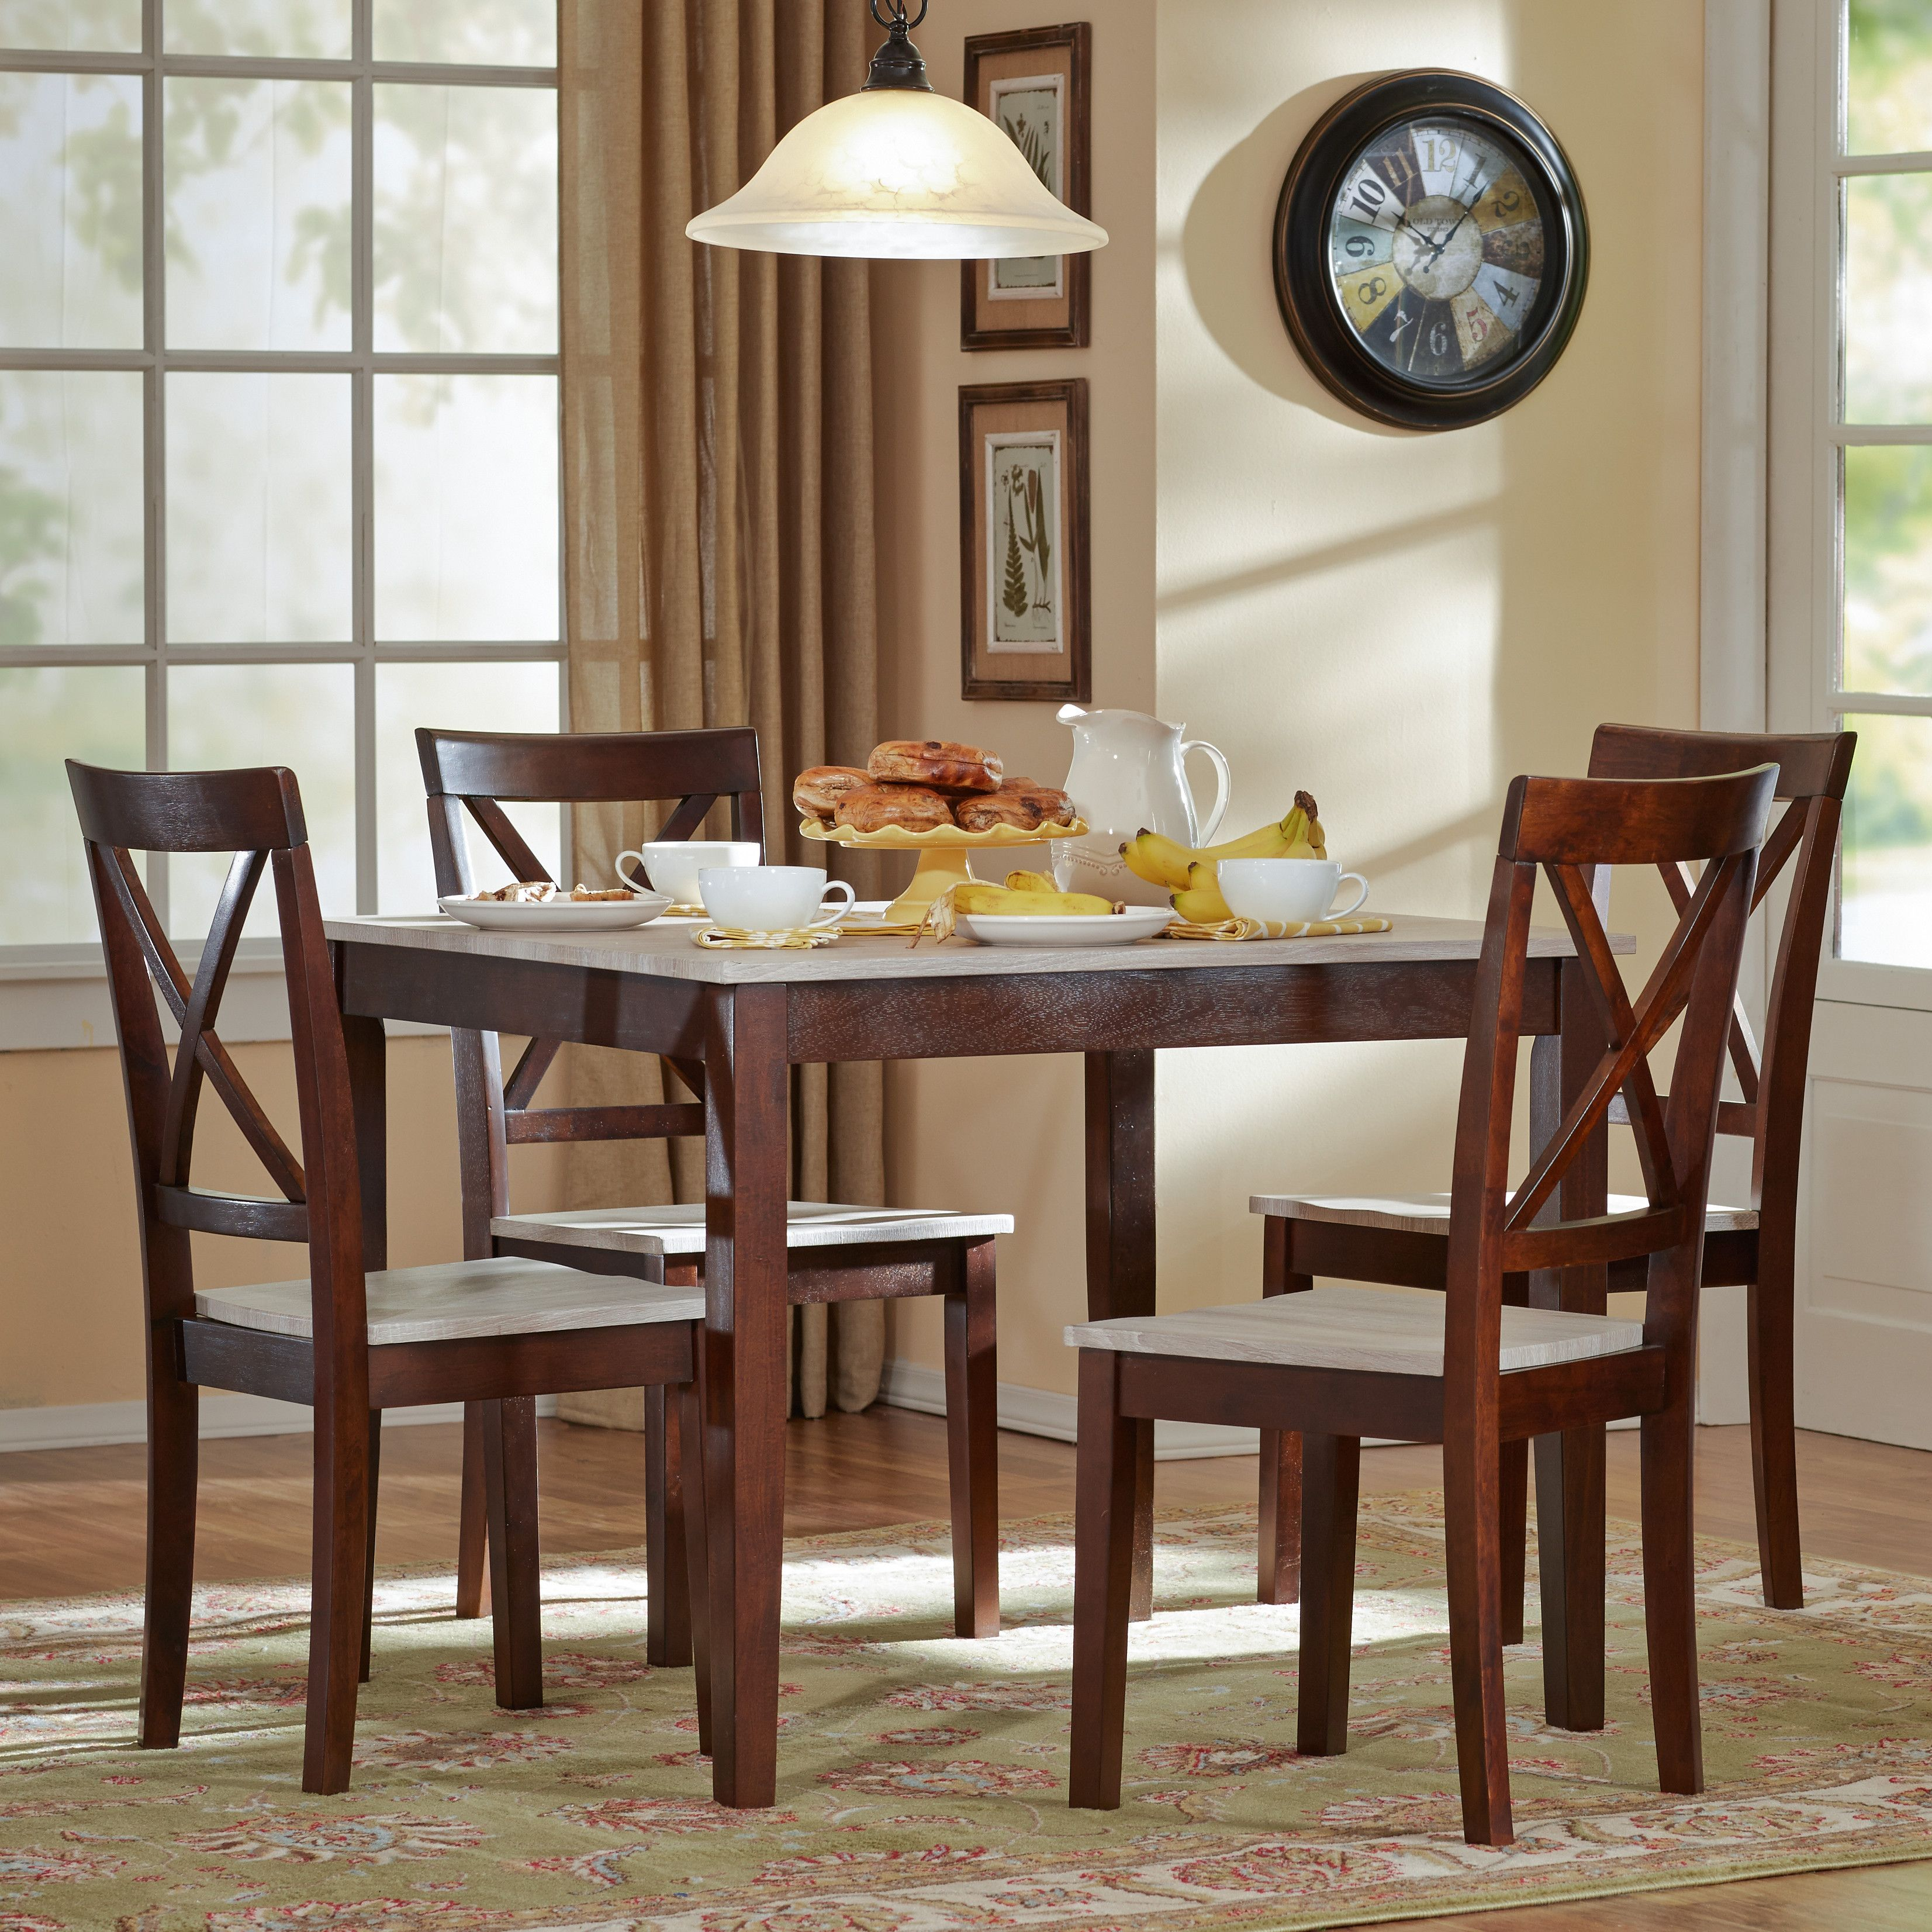 Tilley Rustic 5 Piece Dining Set Kitchen Dining Sets Interior Decorating Kitchen 5 Piece Dining Set